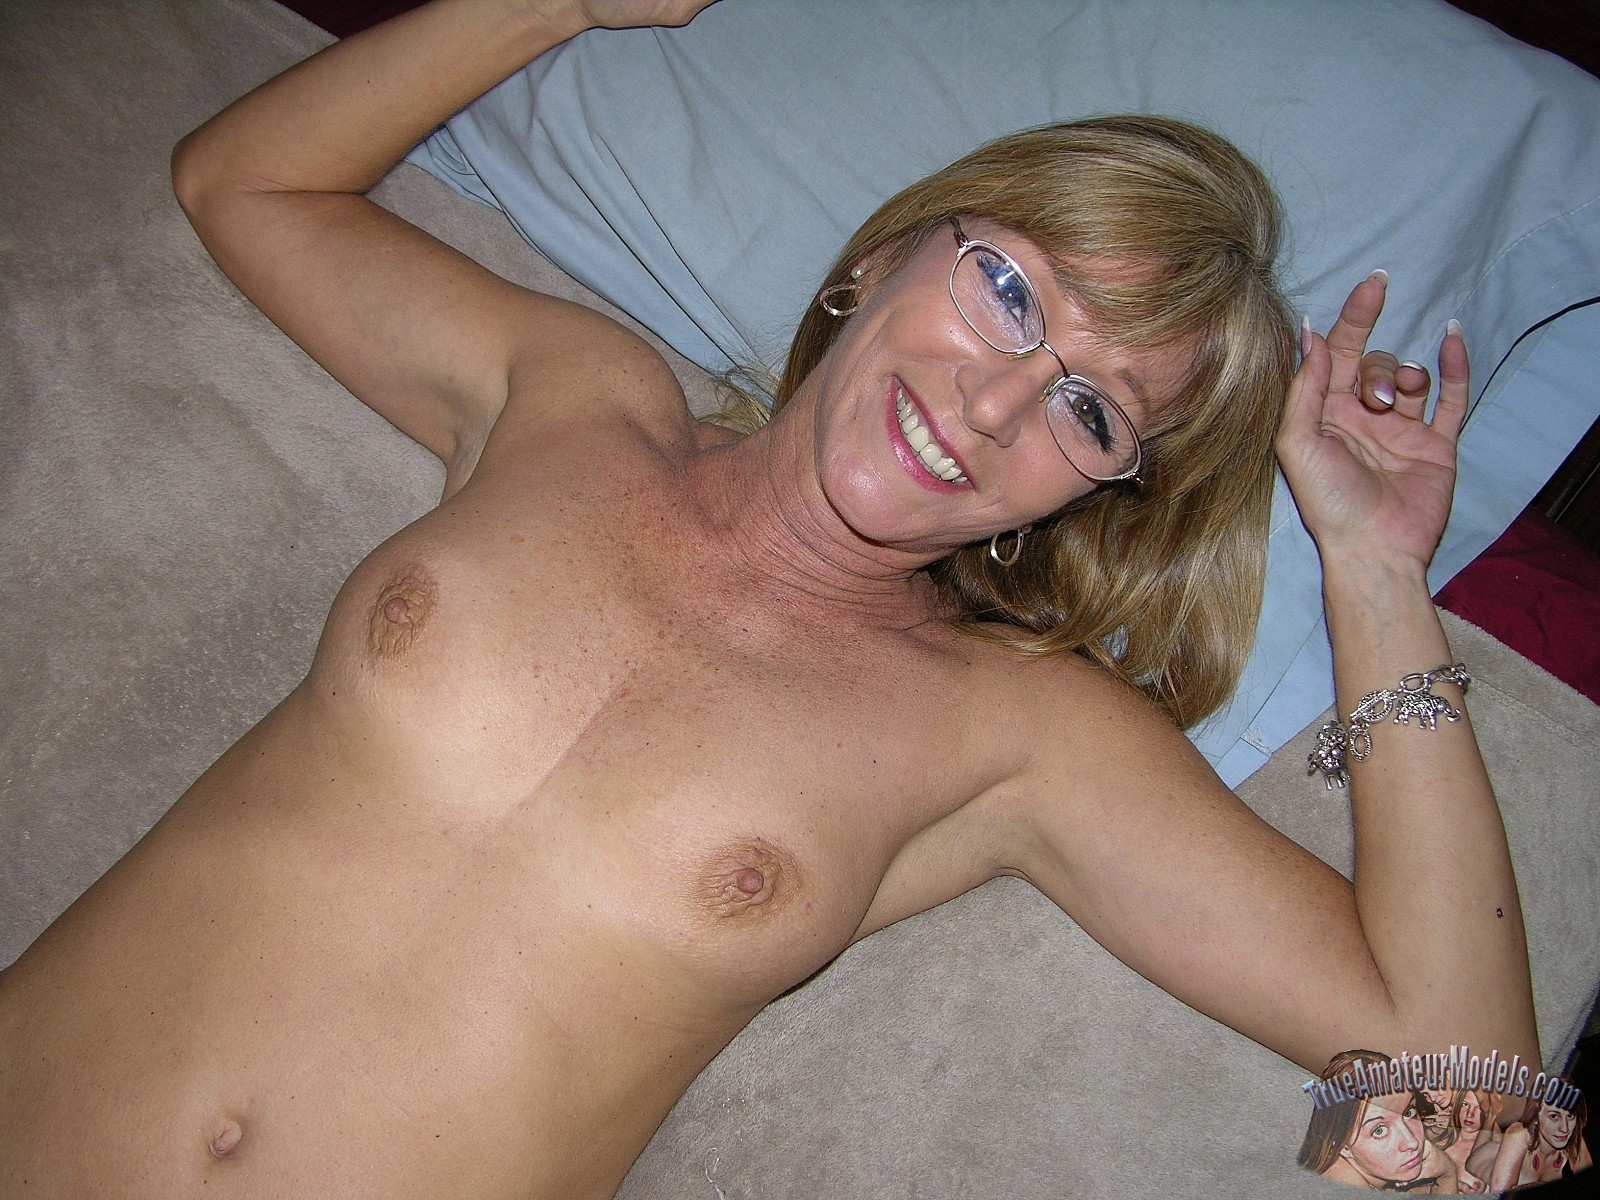 Milf drunk homemade amateur mature sex